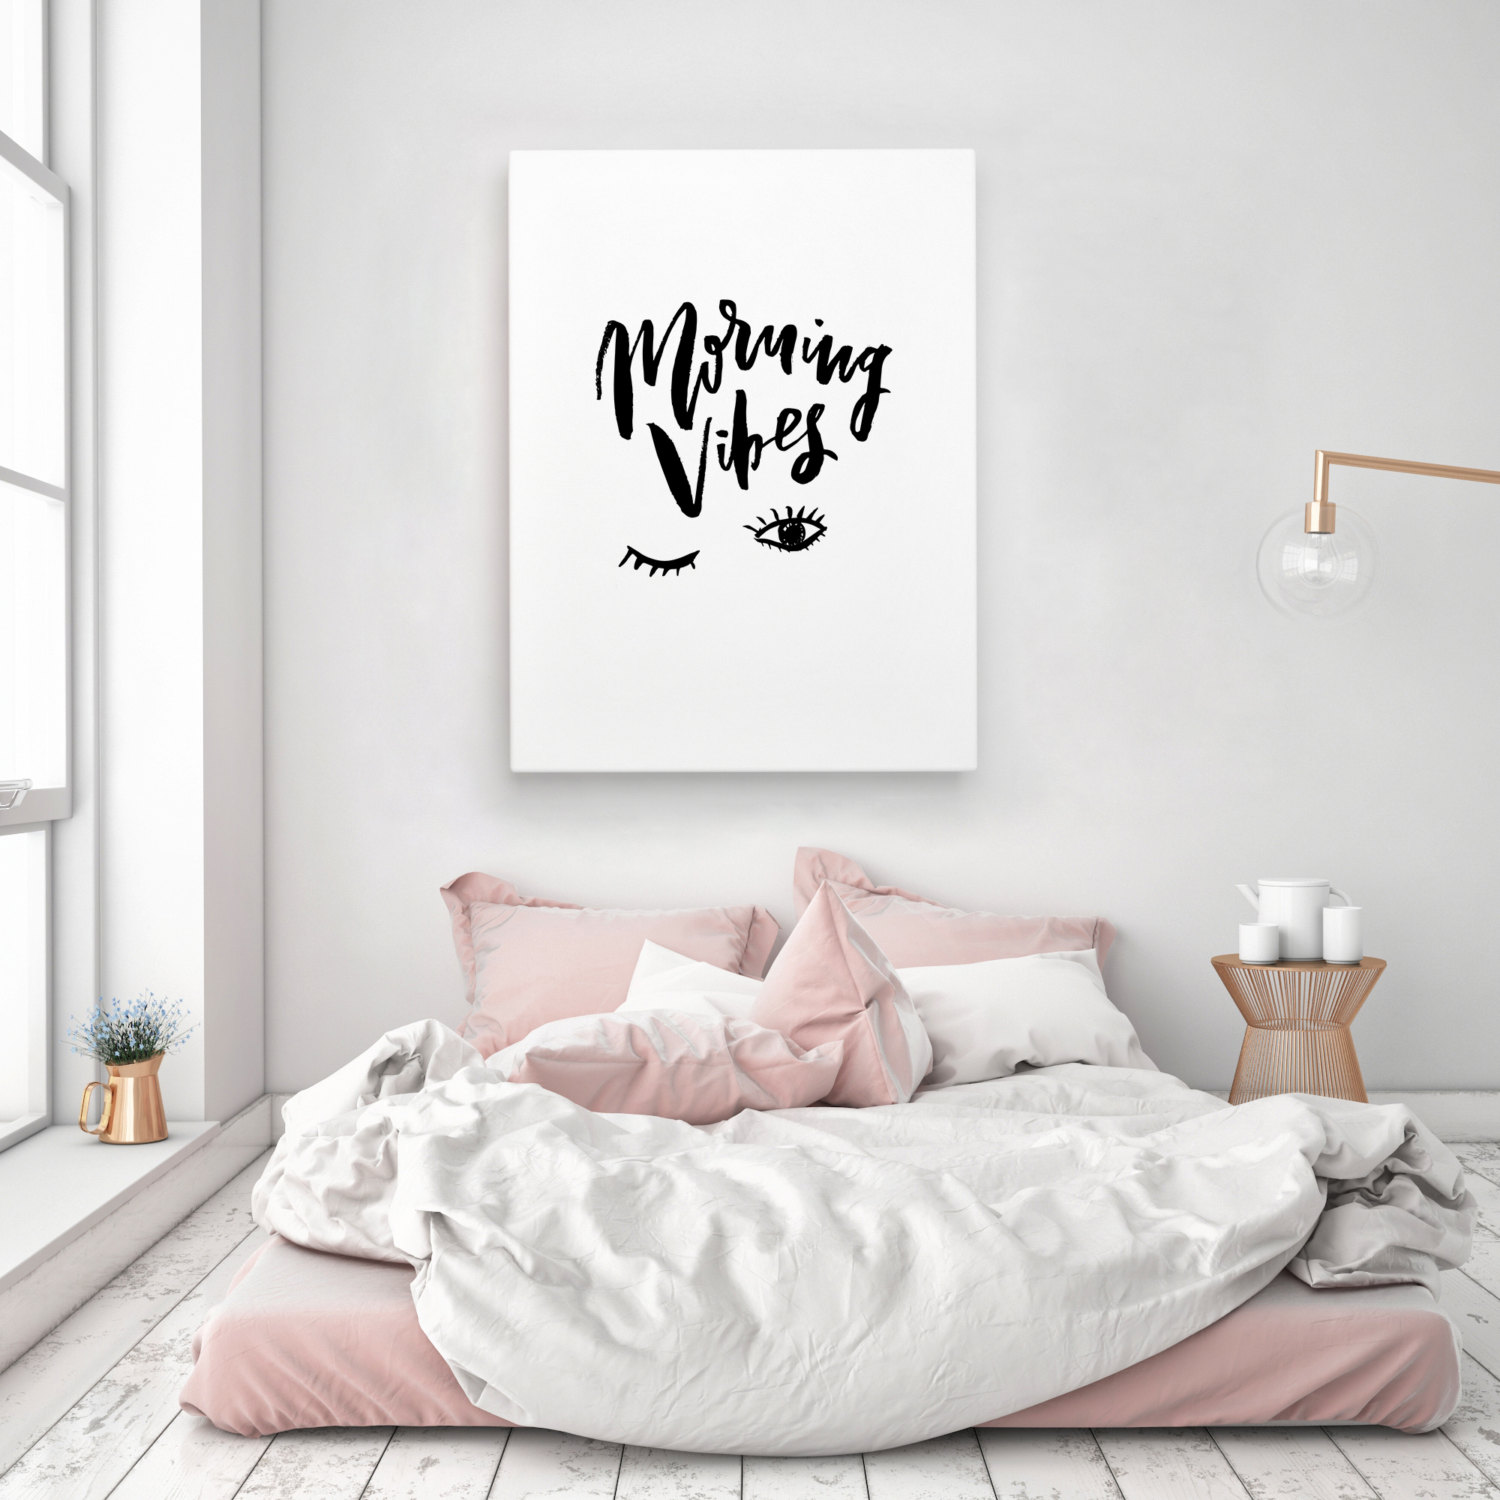 Sacred mornings experience your full radiance while the Decorating walls with posters